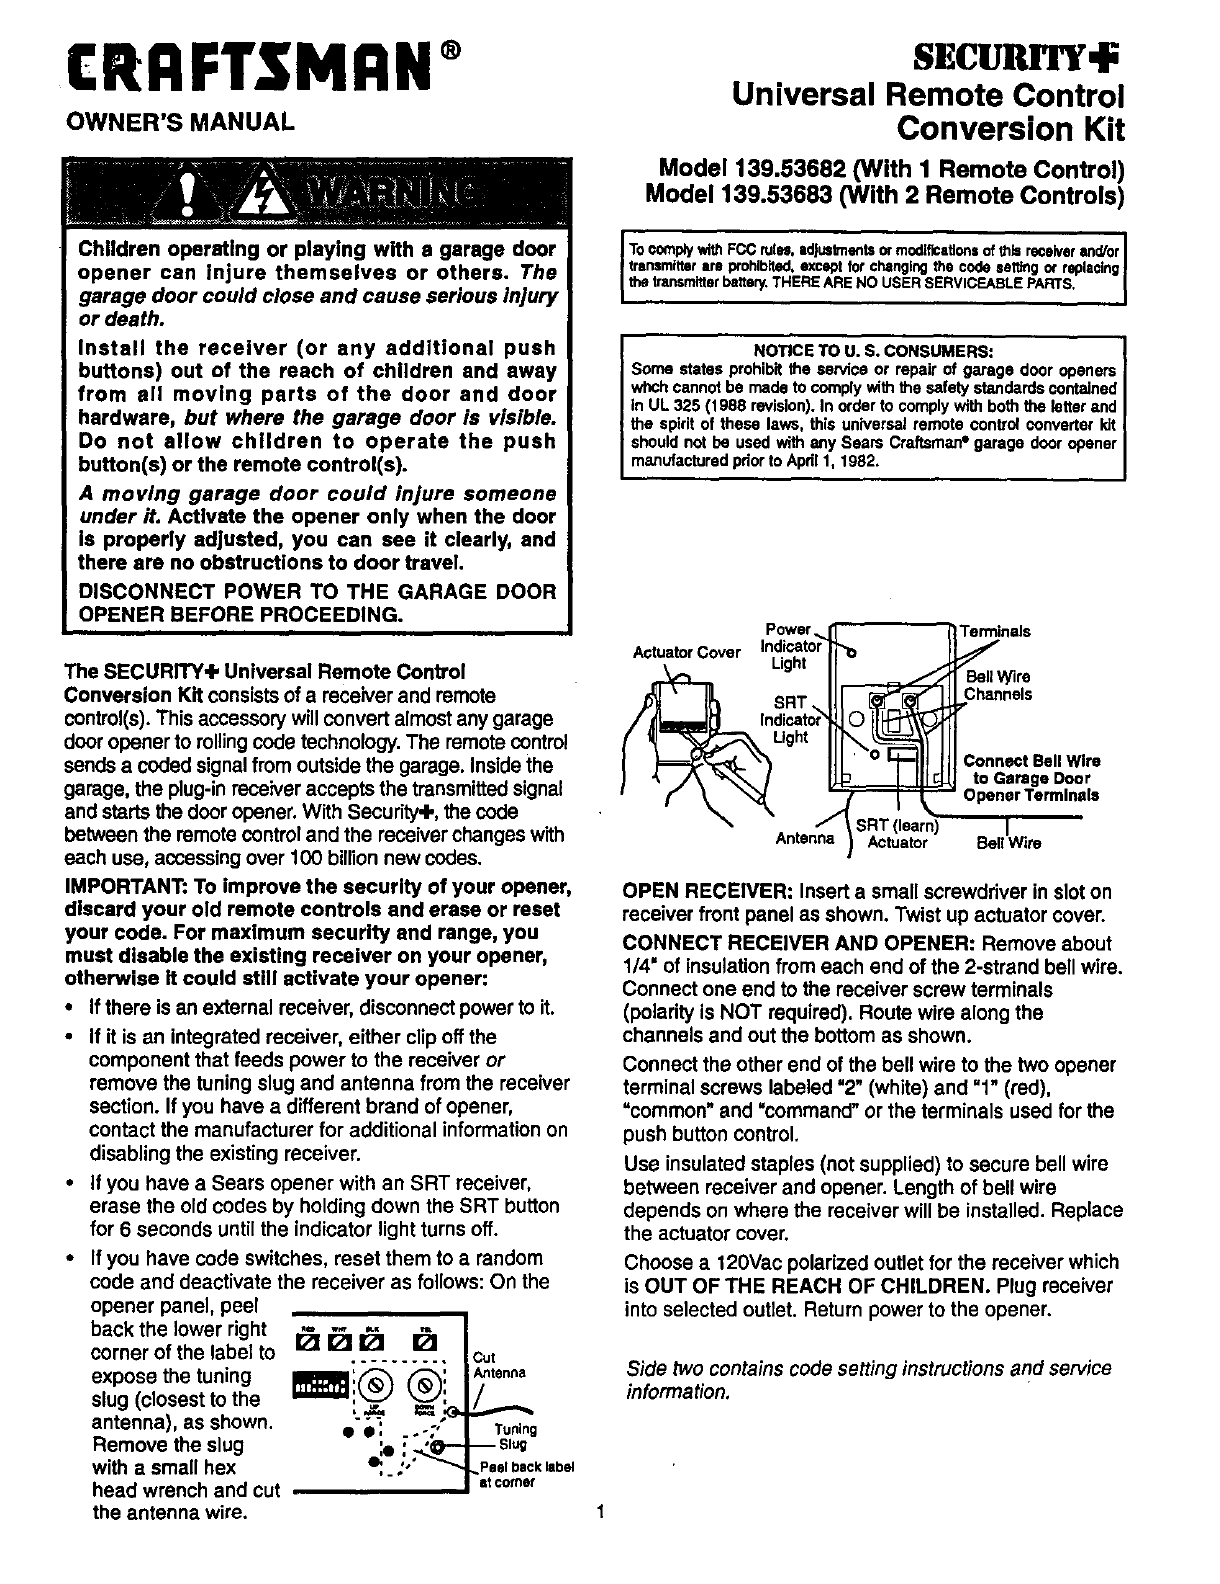 126bc388 f247 4b30 99d0 4853a1076ea6 bg1 craftsman garage door opener 139 53683 user guide manualsonline com craftsman garage door opener wiring schematic at soozxer.org